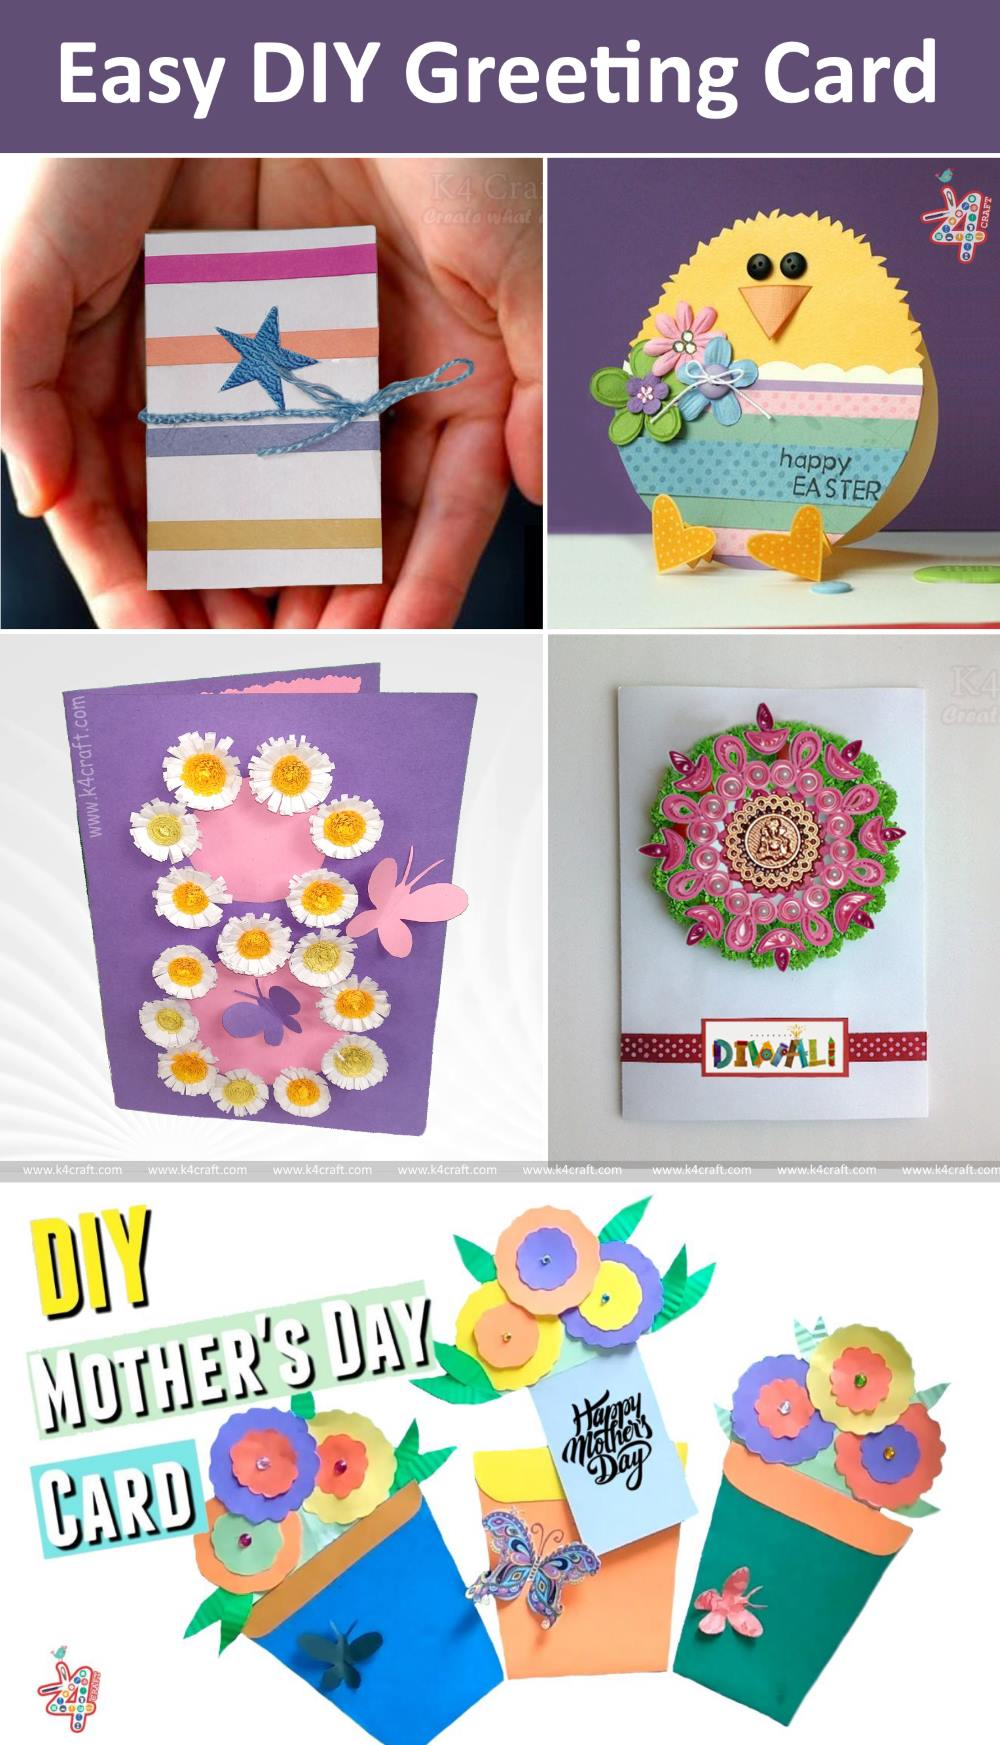 Creative & Easy Paper Crafts To Make Your Day Beautiful